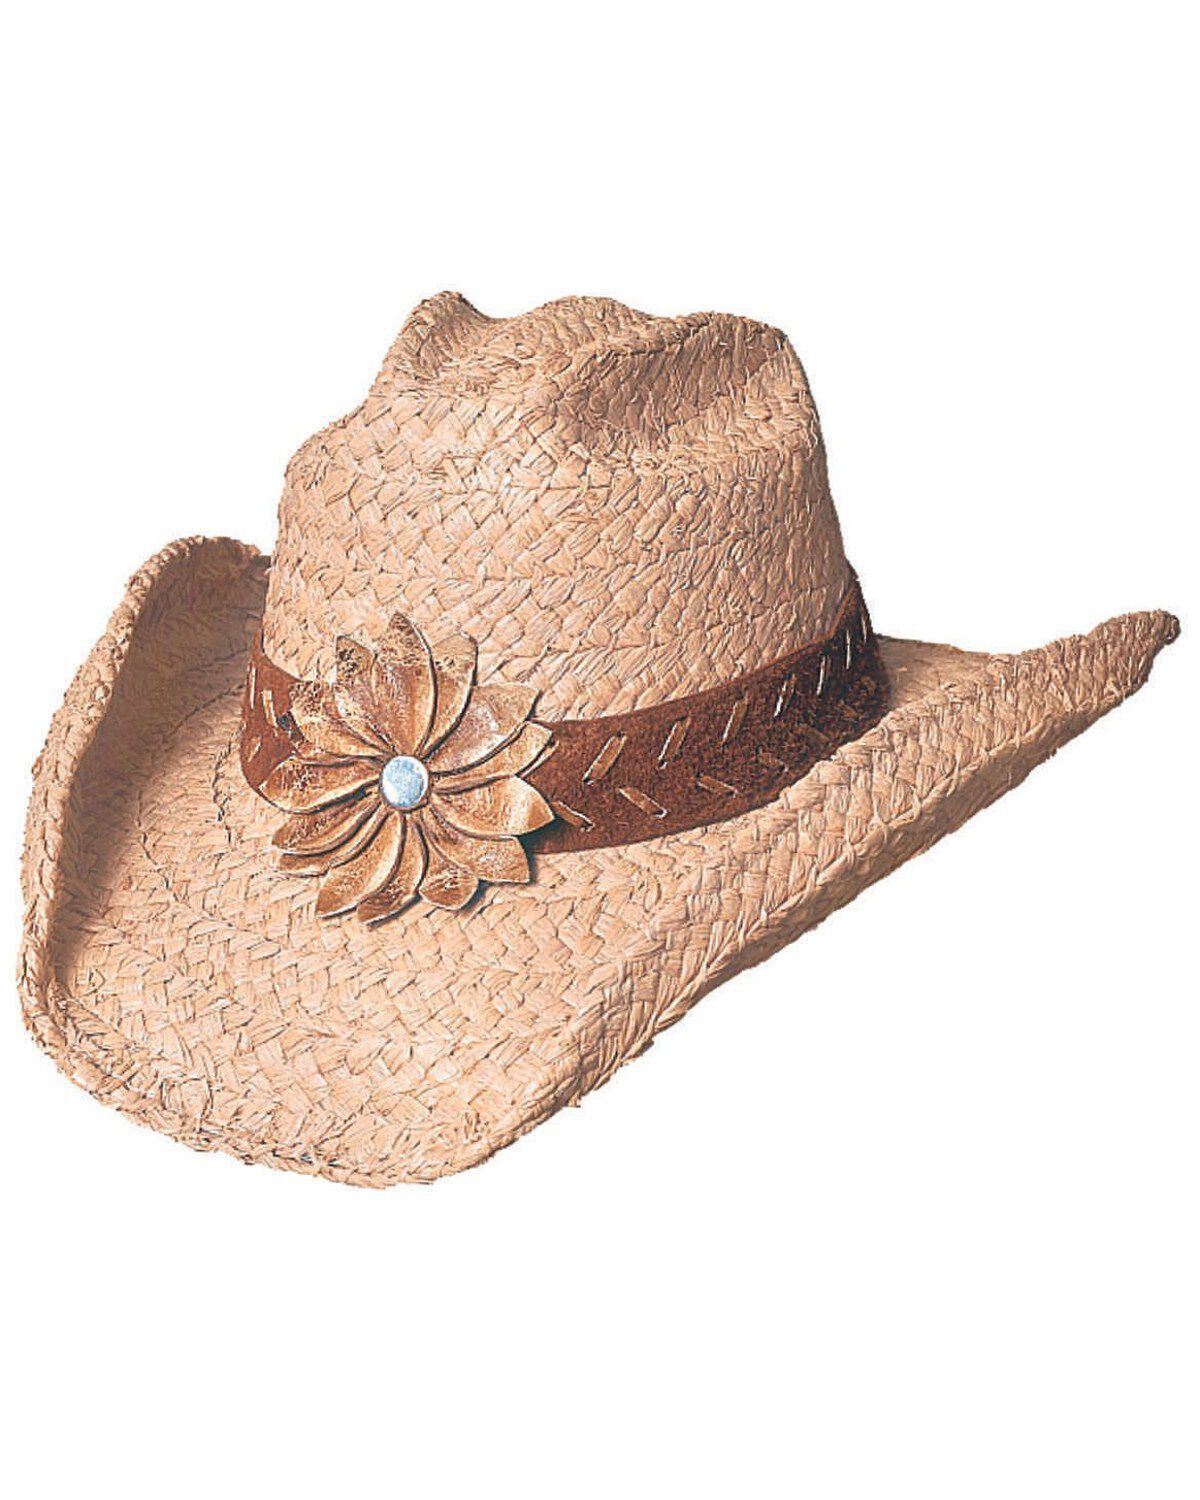 Easter Bonnet Boys Girls Cowboy Hat Made Natural Straw Style Decorate Children